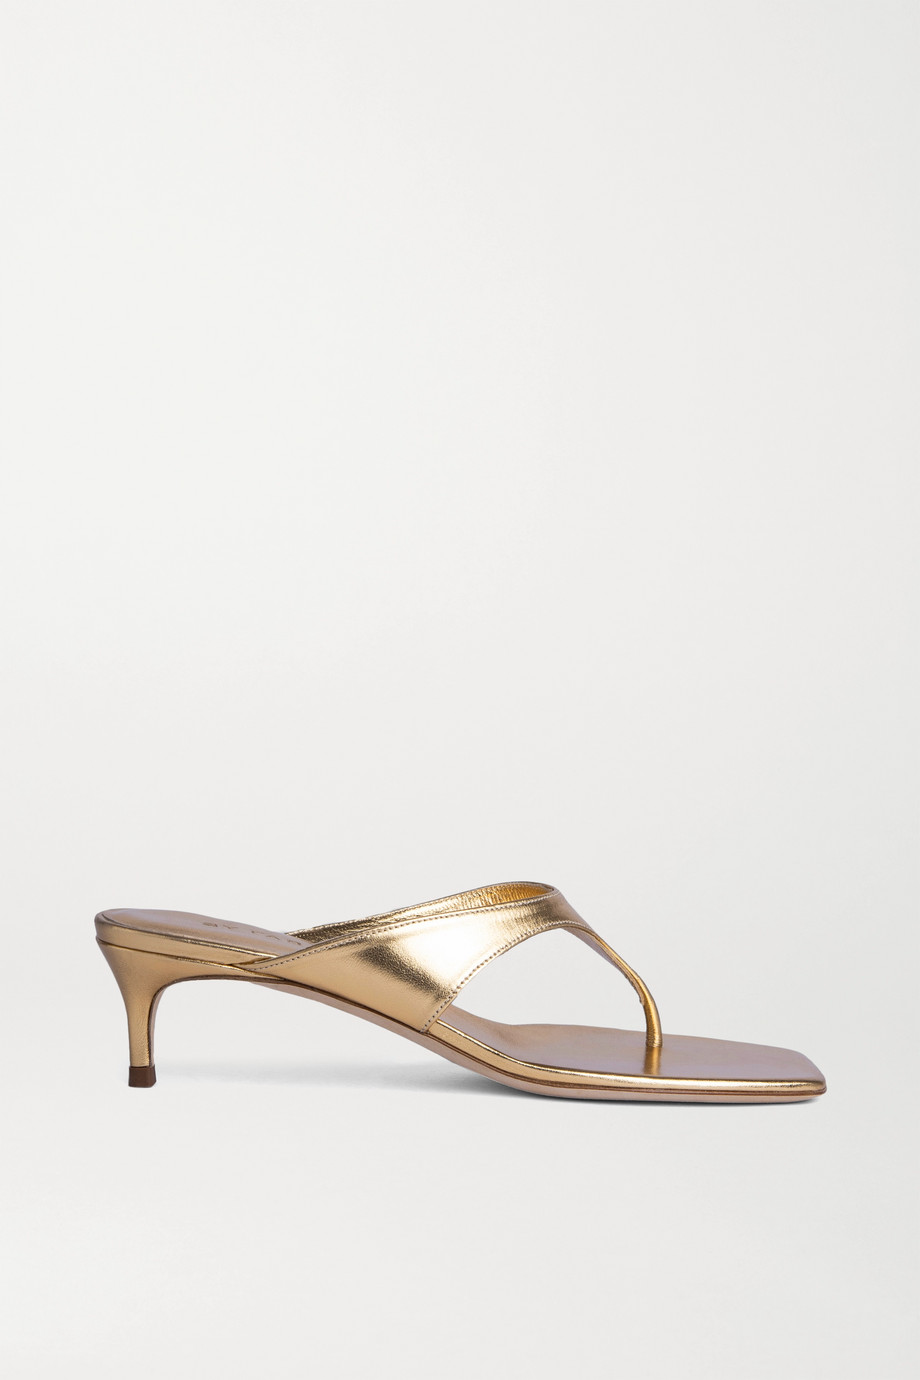 BY FAR Jackie metallic leather sandals